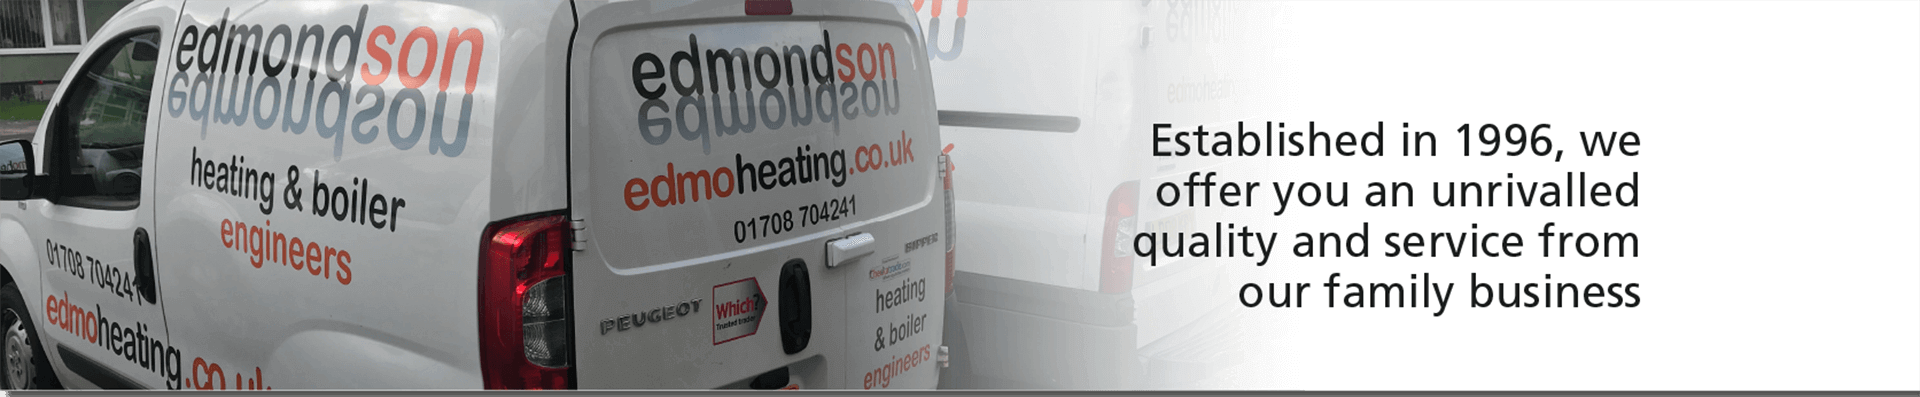 Edmondson Heating & Boiler Engineers Hornchurch